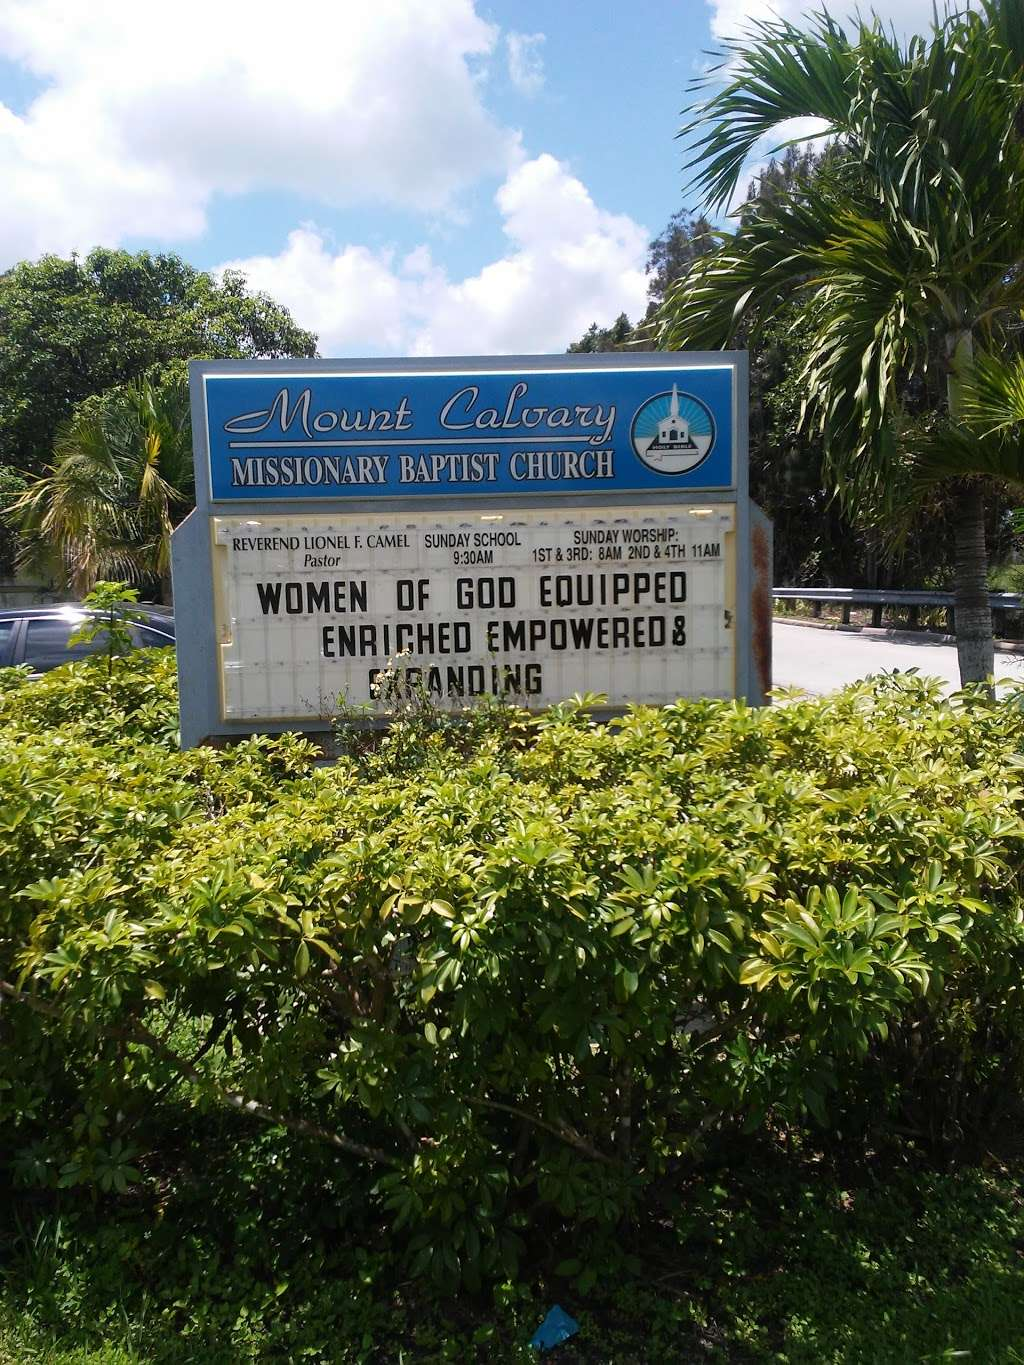 Mount Calvary Baptist Church - church  | Photo 1 of 2 | Address: 399 Canal St, Belle Glade, FL 33430, USA | Phone: (561) 996-8238